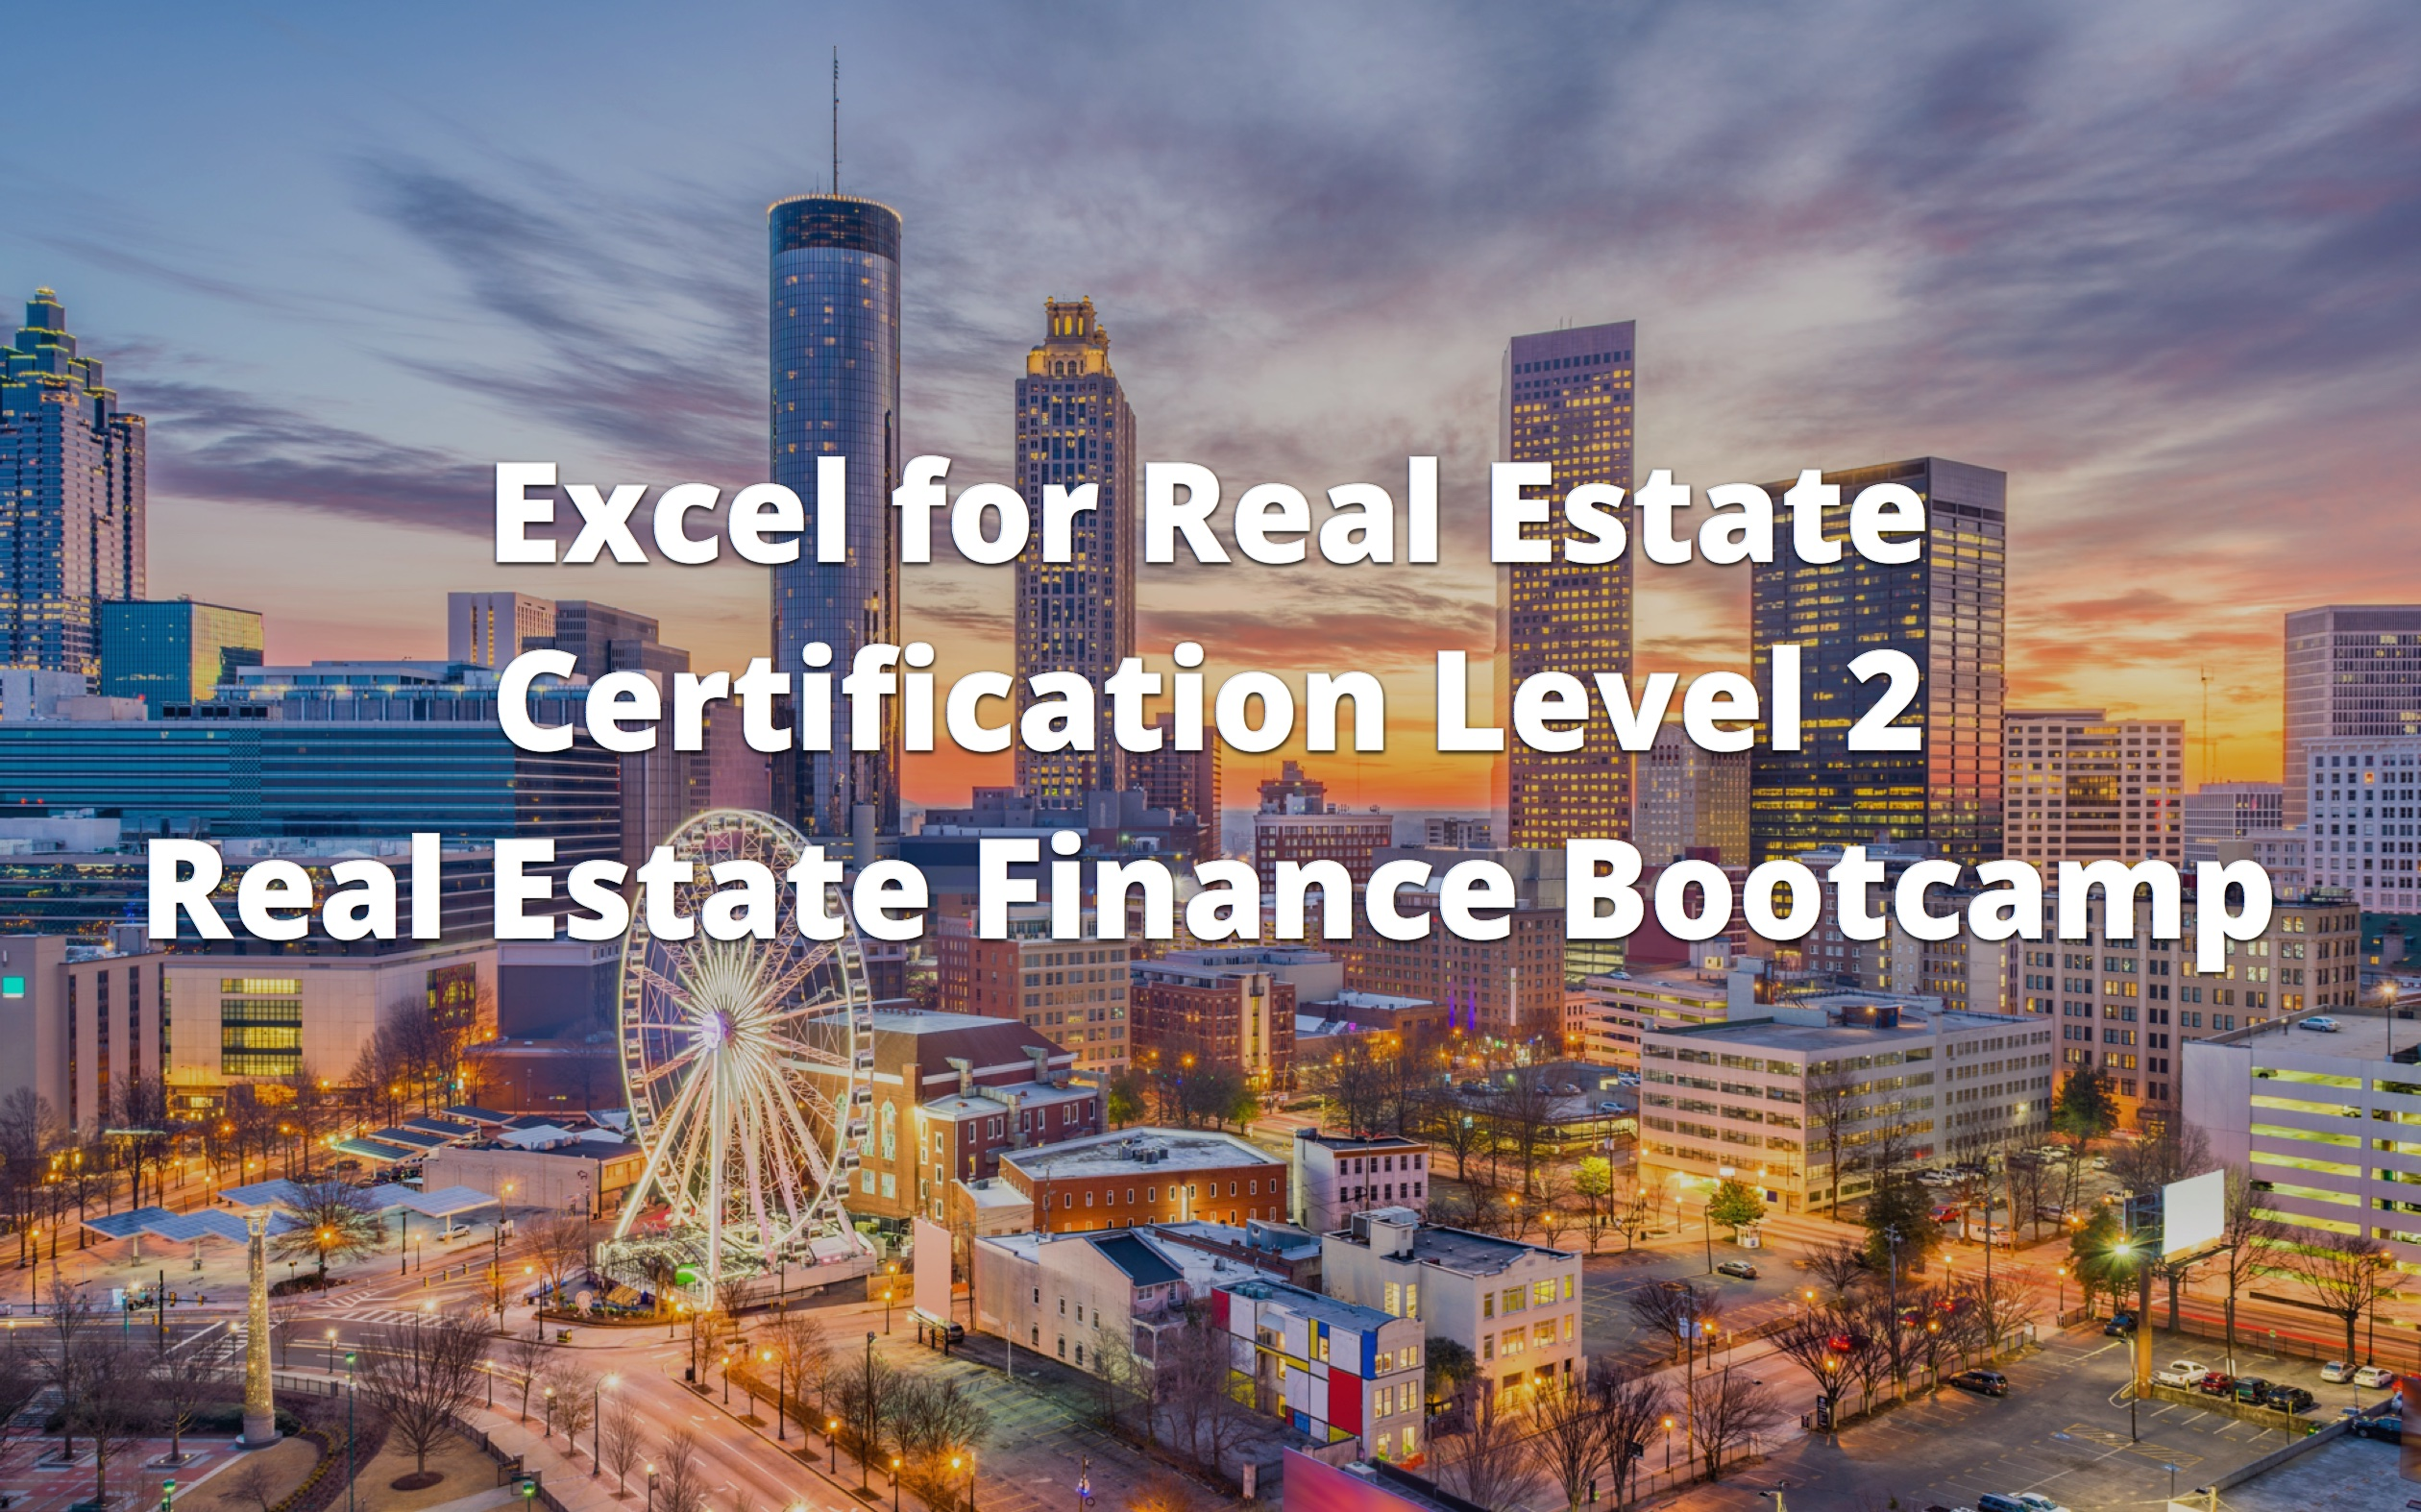 Excel for Real Estate Certification Level 2 Course